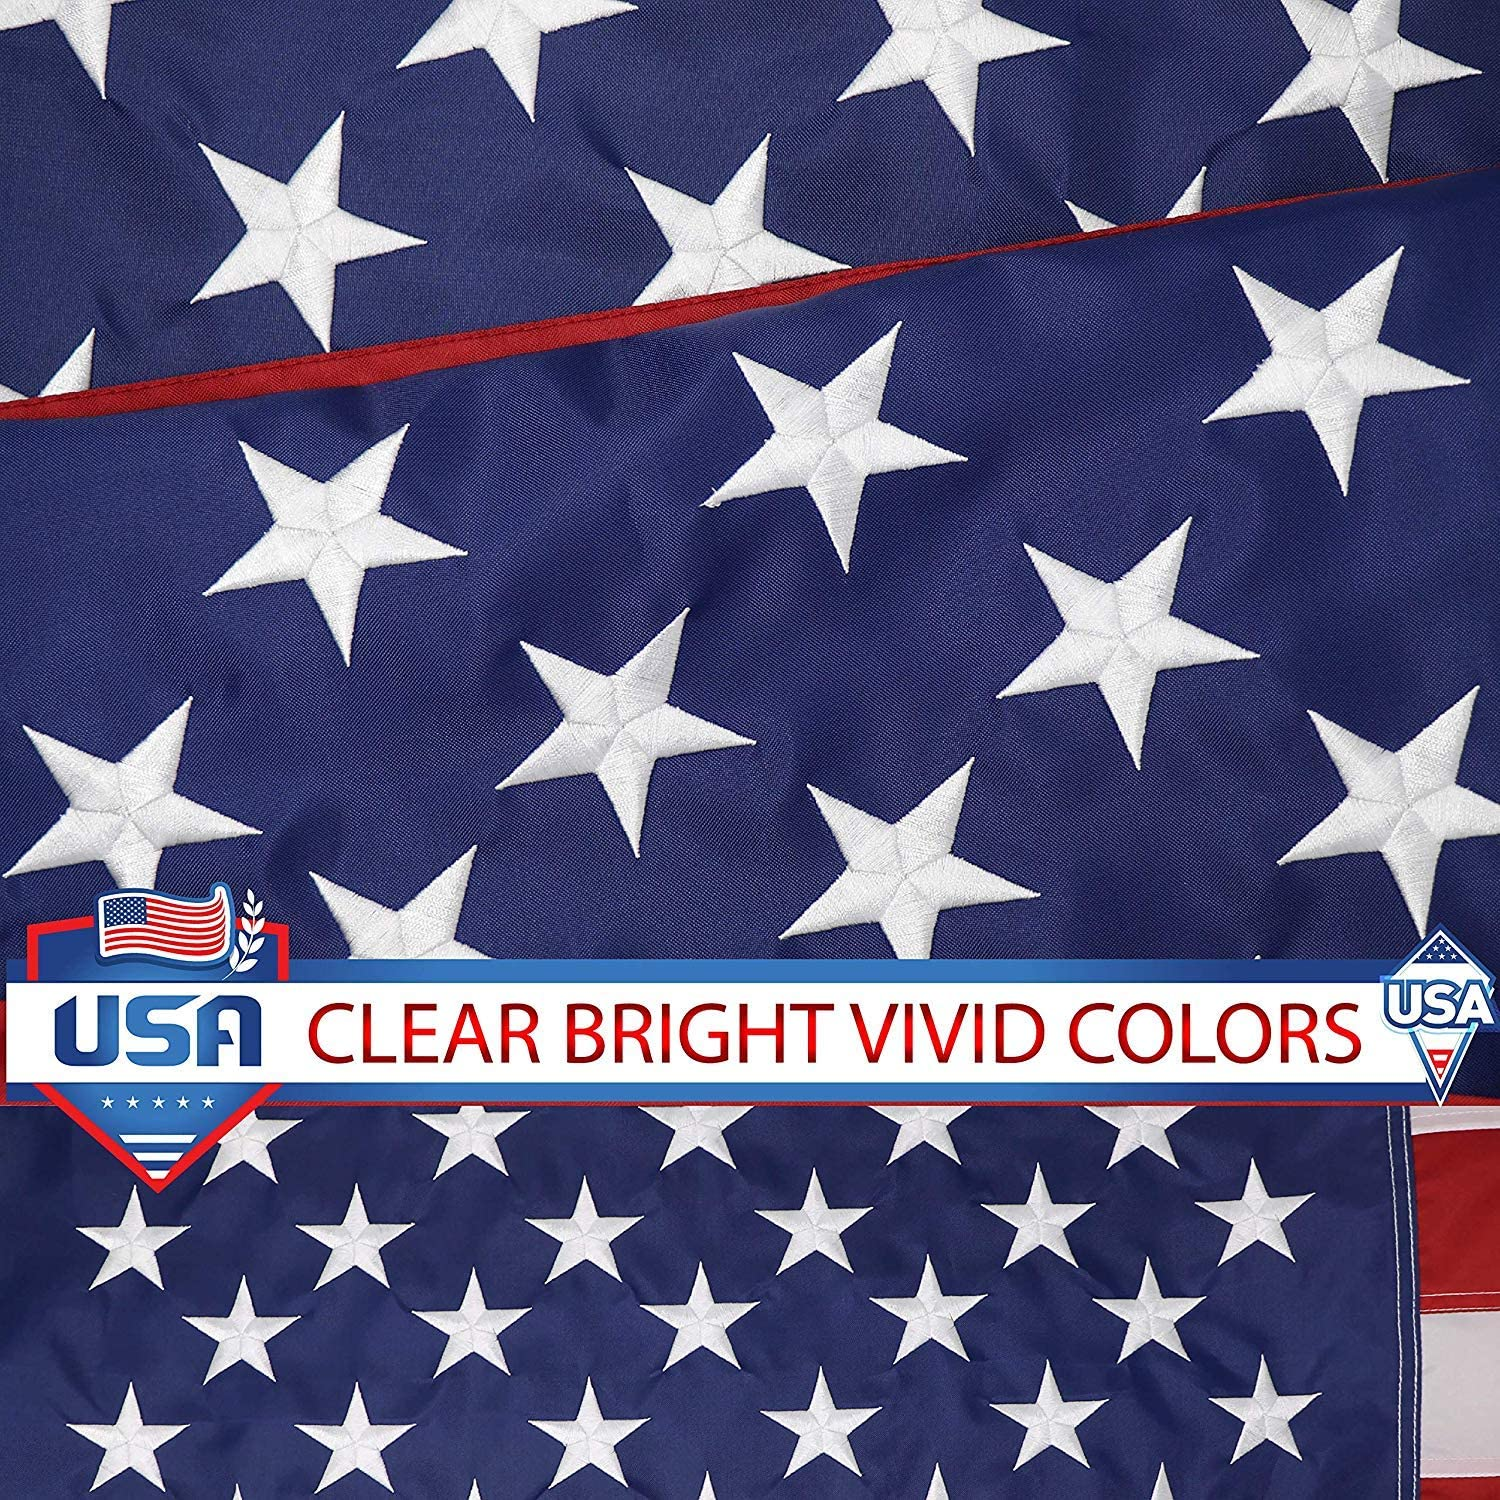 G128 American Flag 5x8 ft USA US Flag Embroidered Stars Sewn Stripes Brass Grommets Durable Indoor Outdoor Use : Garden & Outdoor